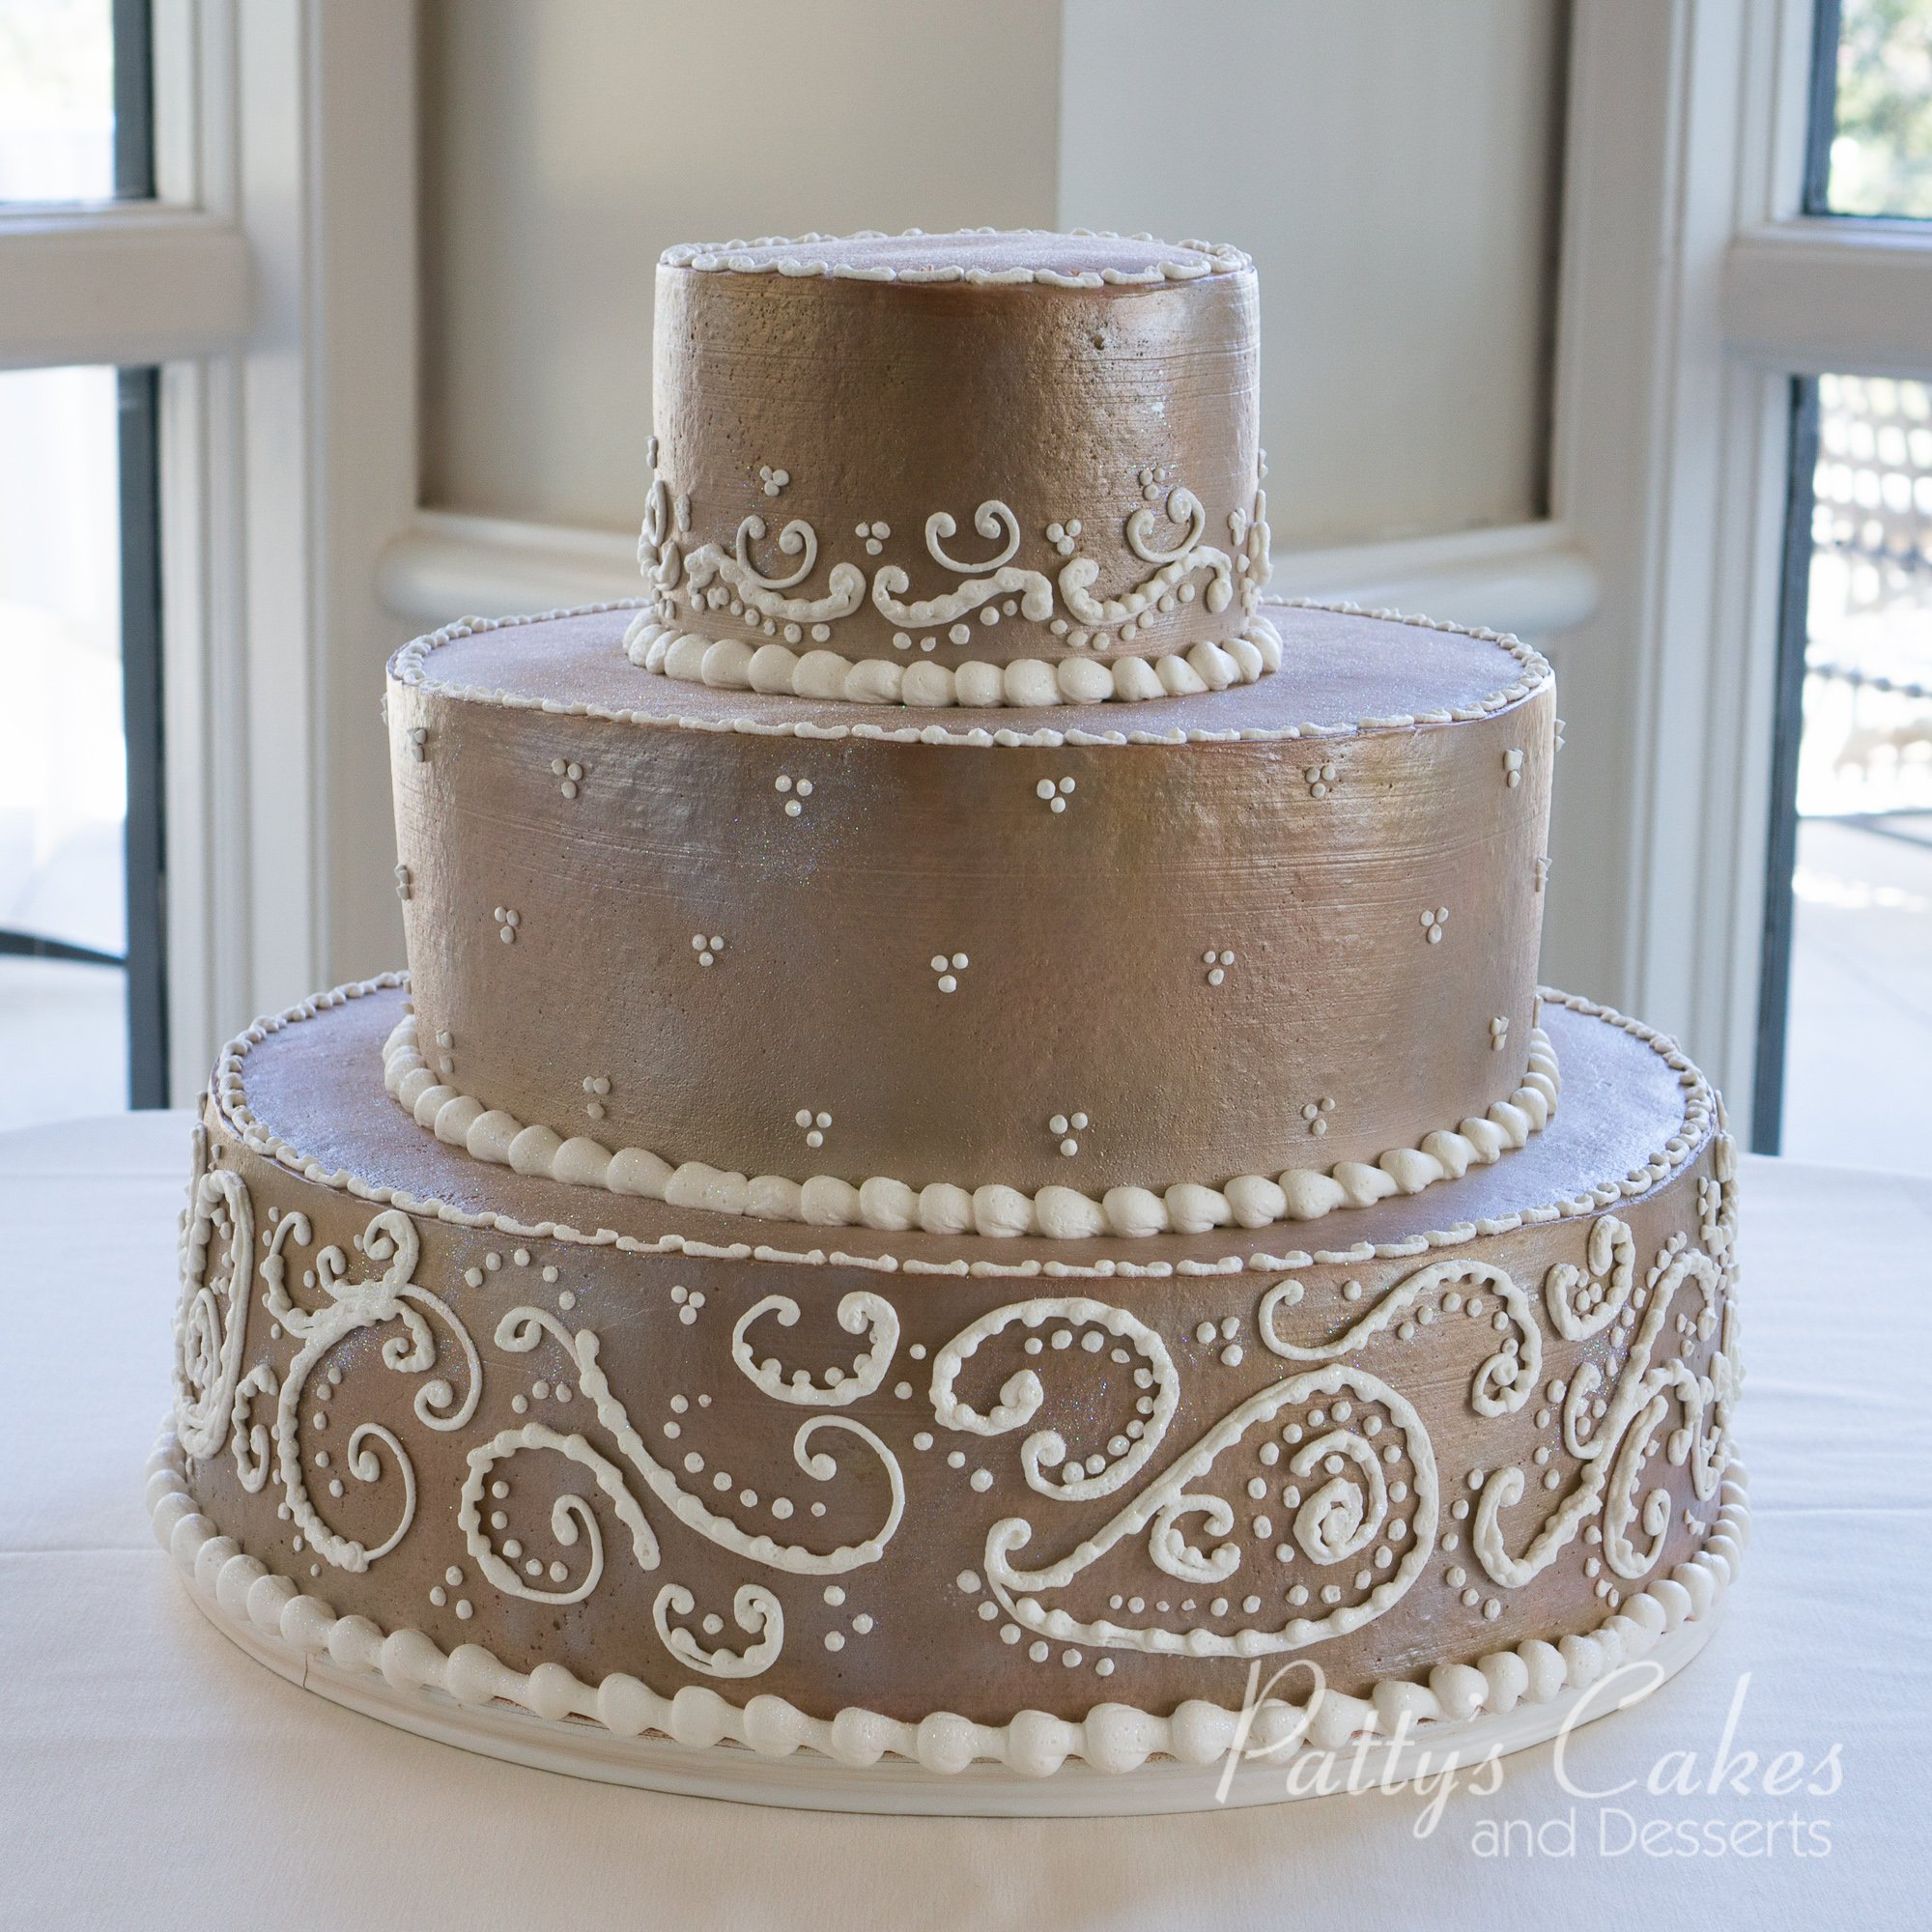 paisley wedding cake photo of a paisley wedding cake patty s cakes and desserts 18107